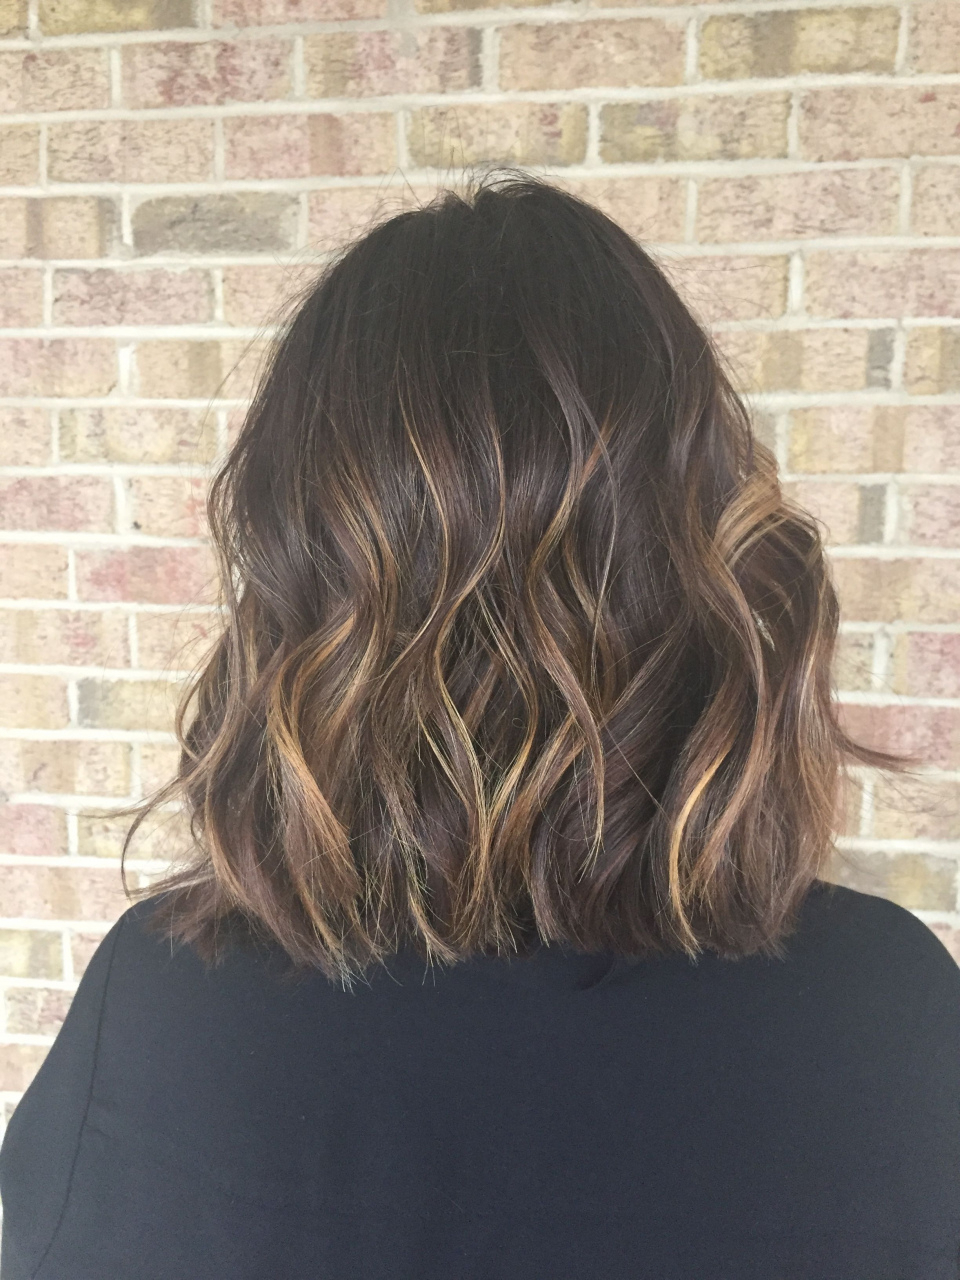 2018 Short Brunette Hairstyles New Balayage For Dark Brown Hair In Short Hairstyles With Balayage (View 25 of 25)